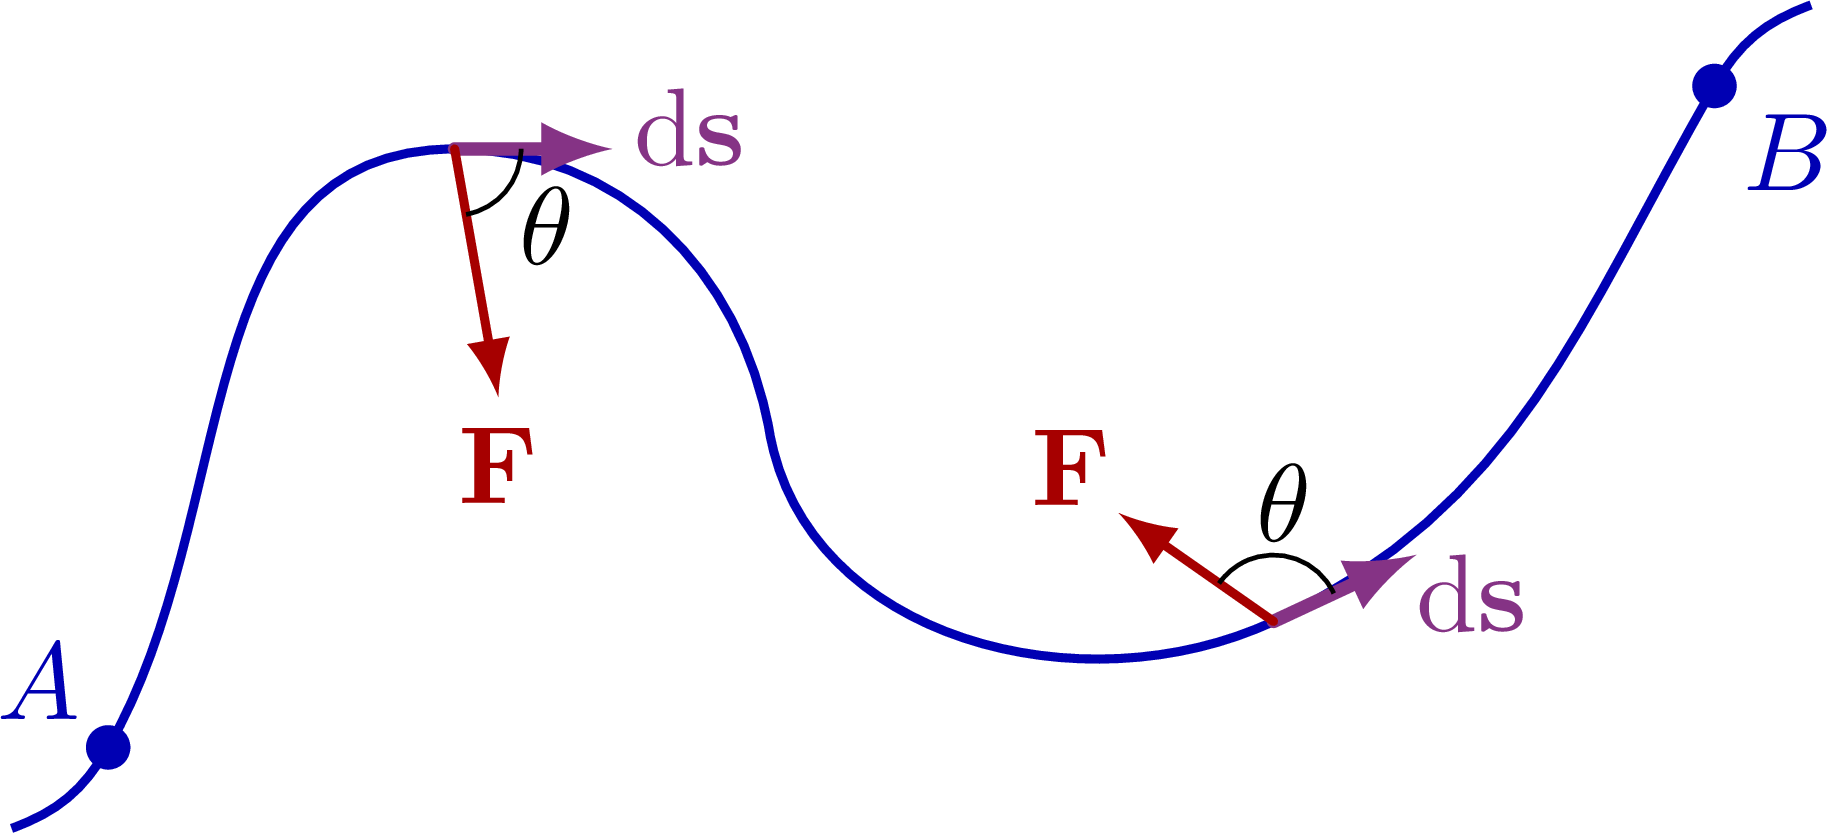 energy_work_paths-001.png